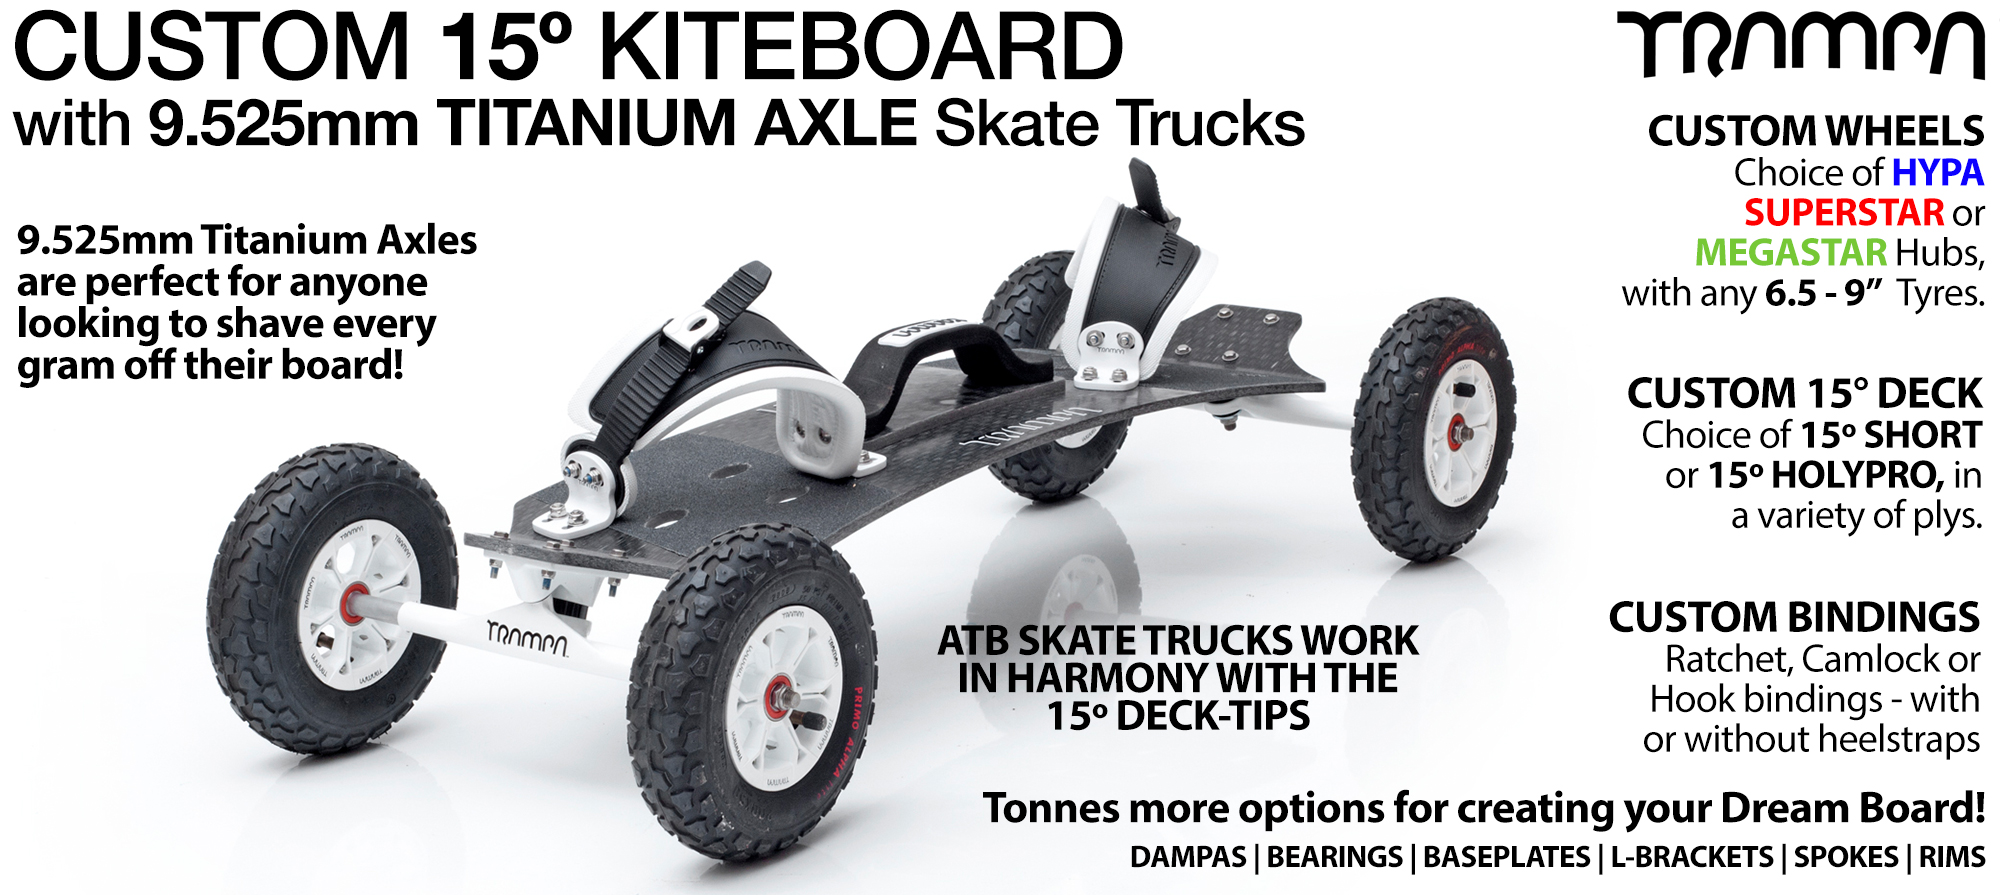 15° HOLYPRO TRAMPA Kiteboard - 9.525mm TITANIUM Axle Skate Trucks SUPERSTAR Wheels & CAMLOCK Bindings